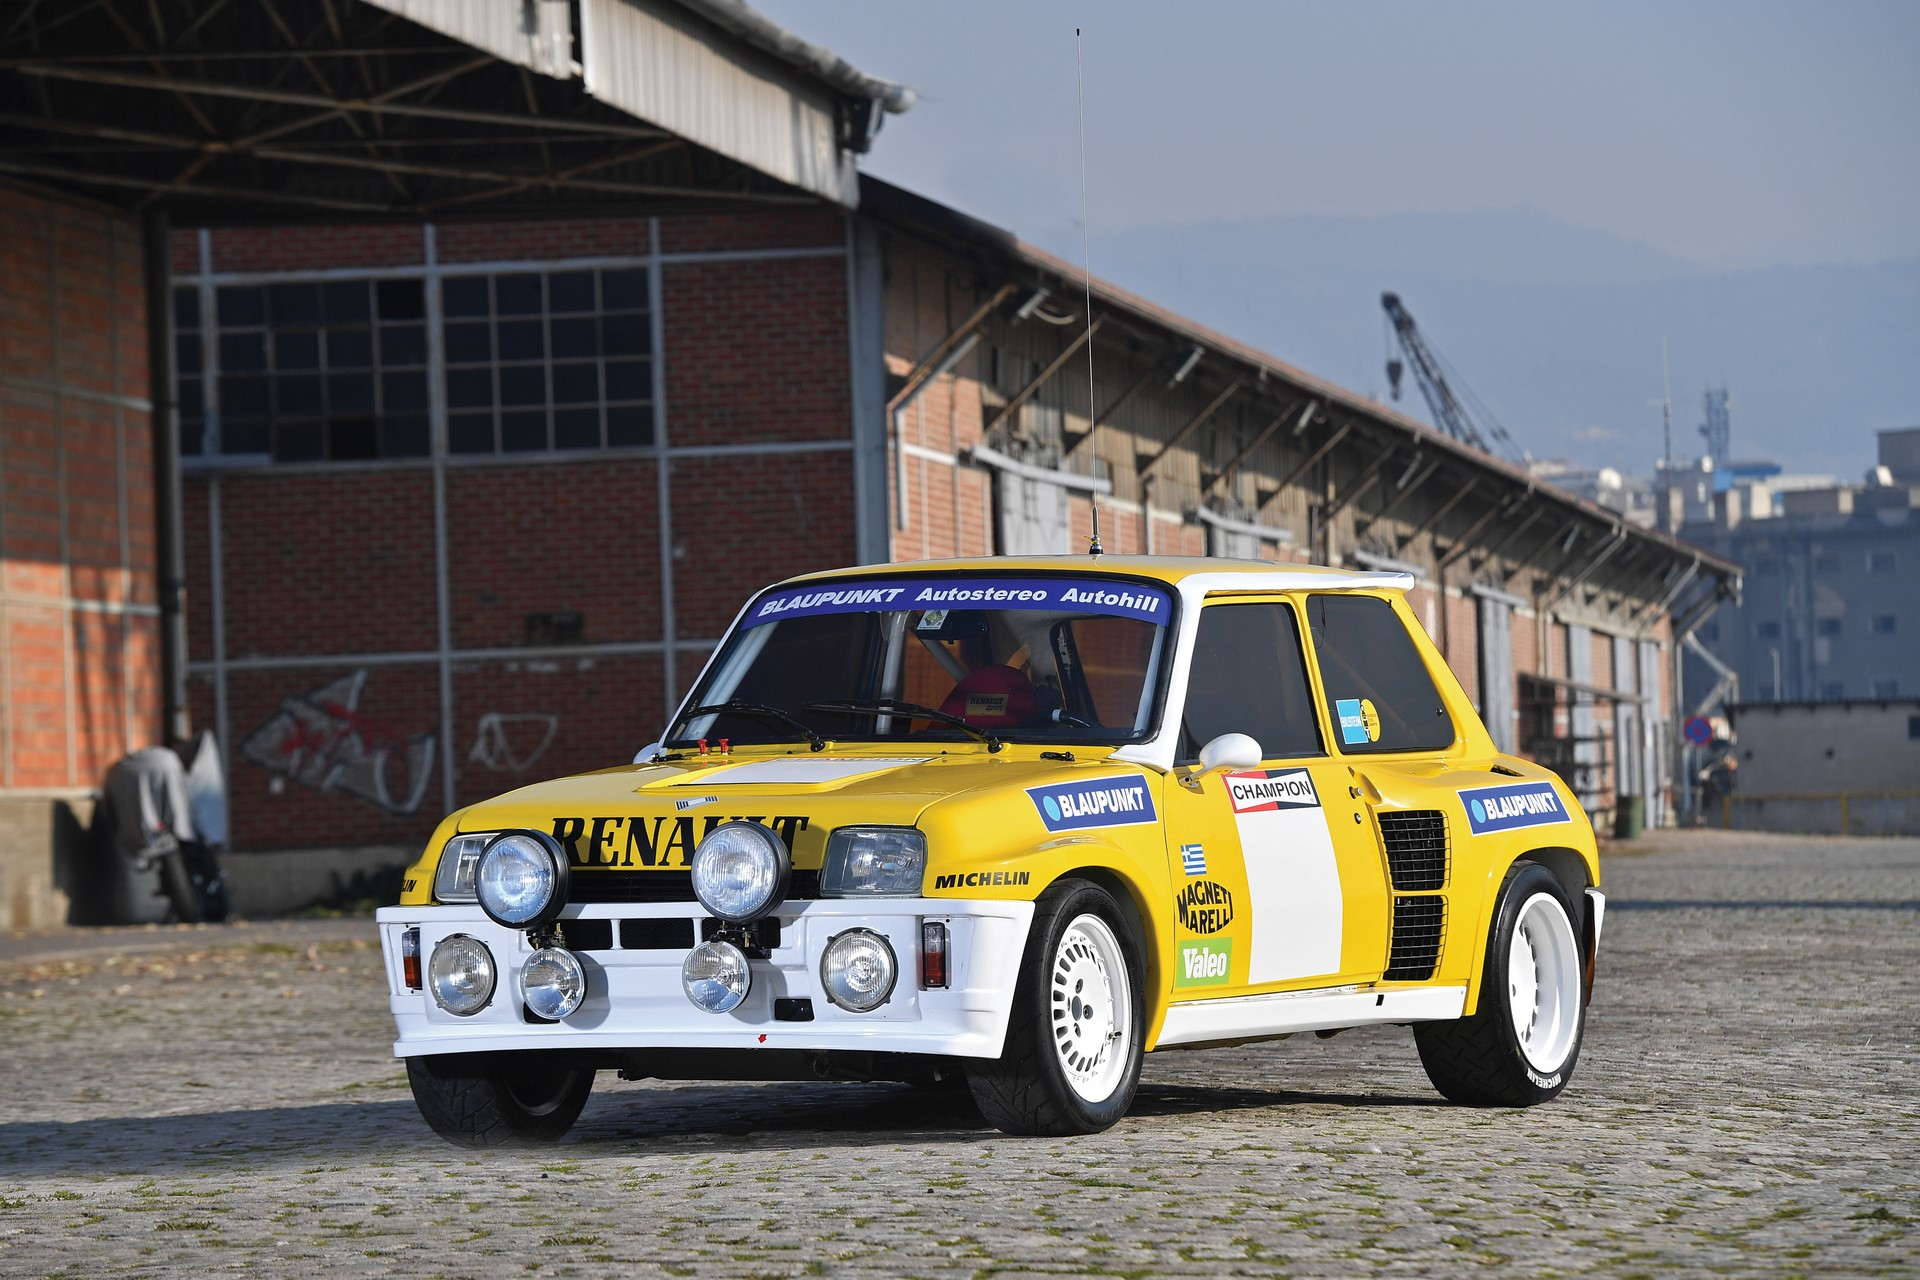 Renault 5 Turbo Tour de Corse (1)